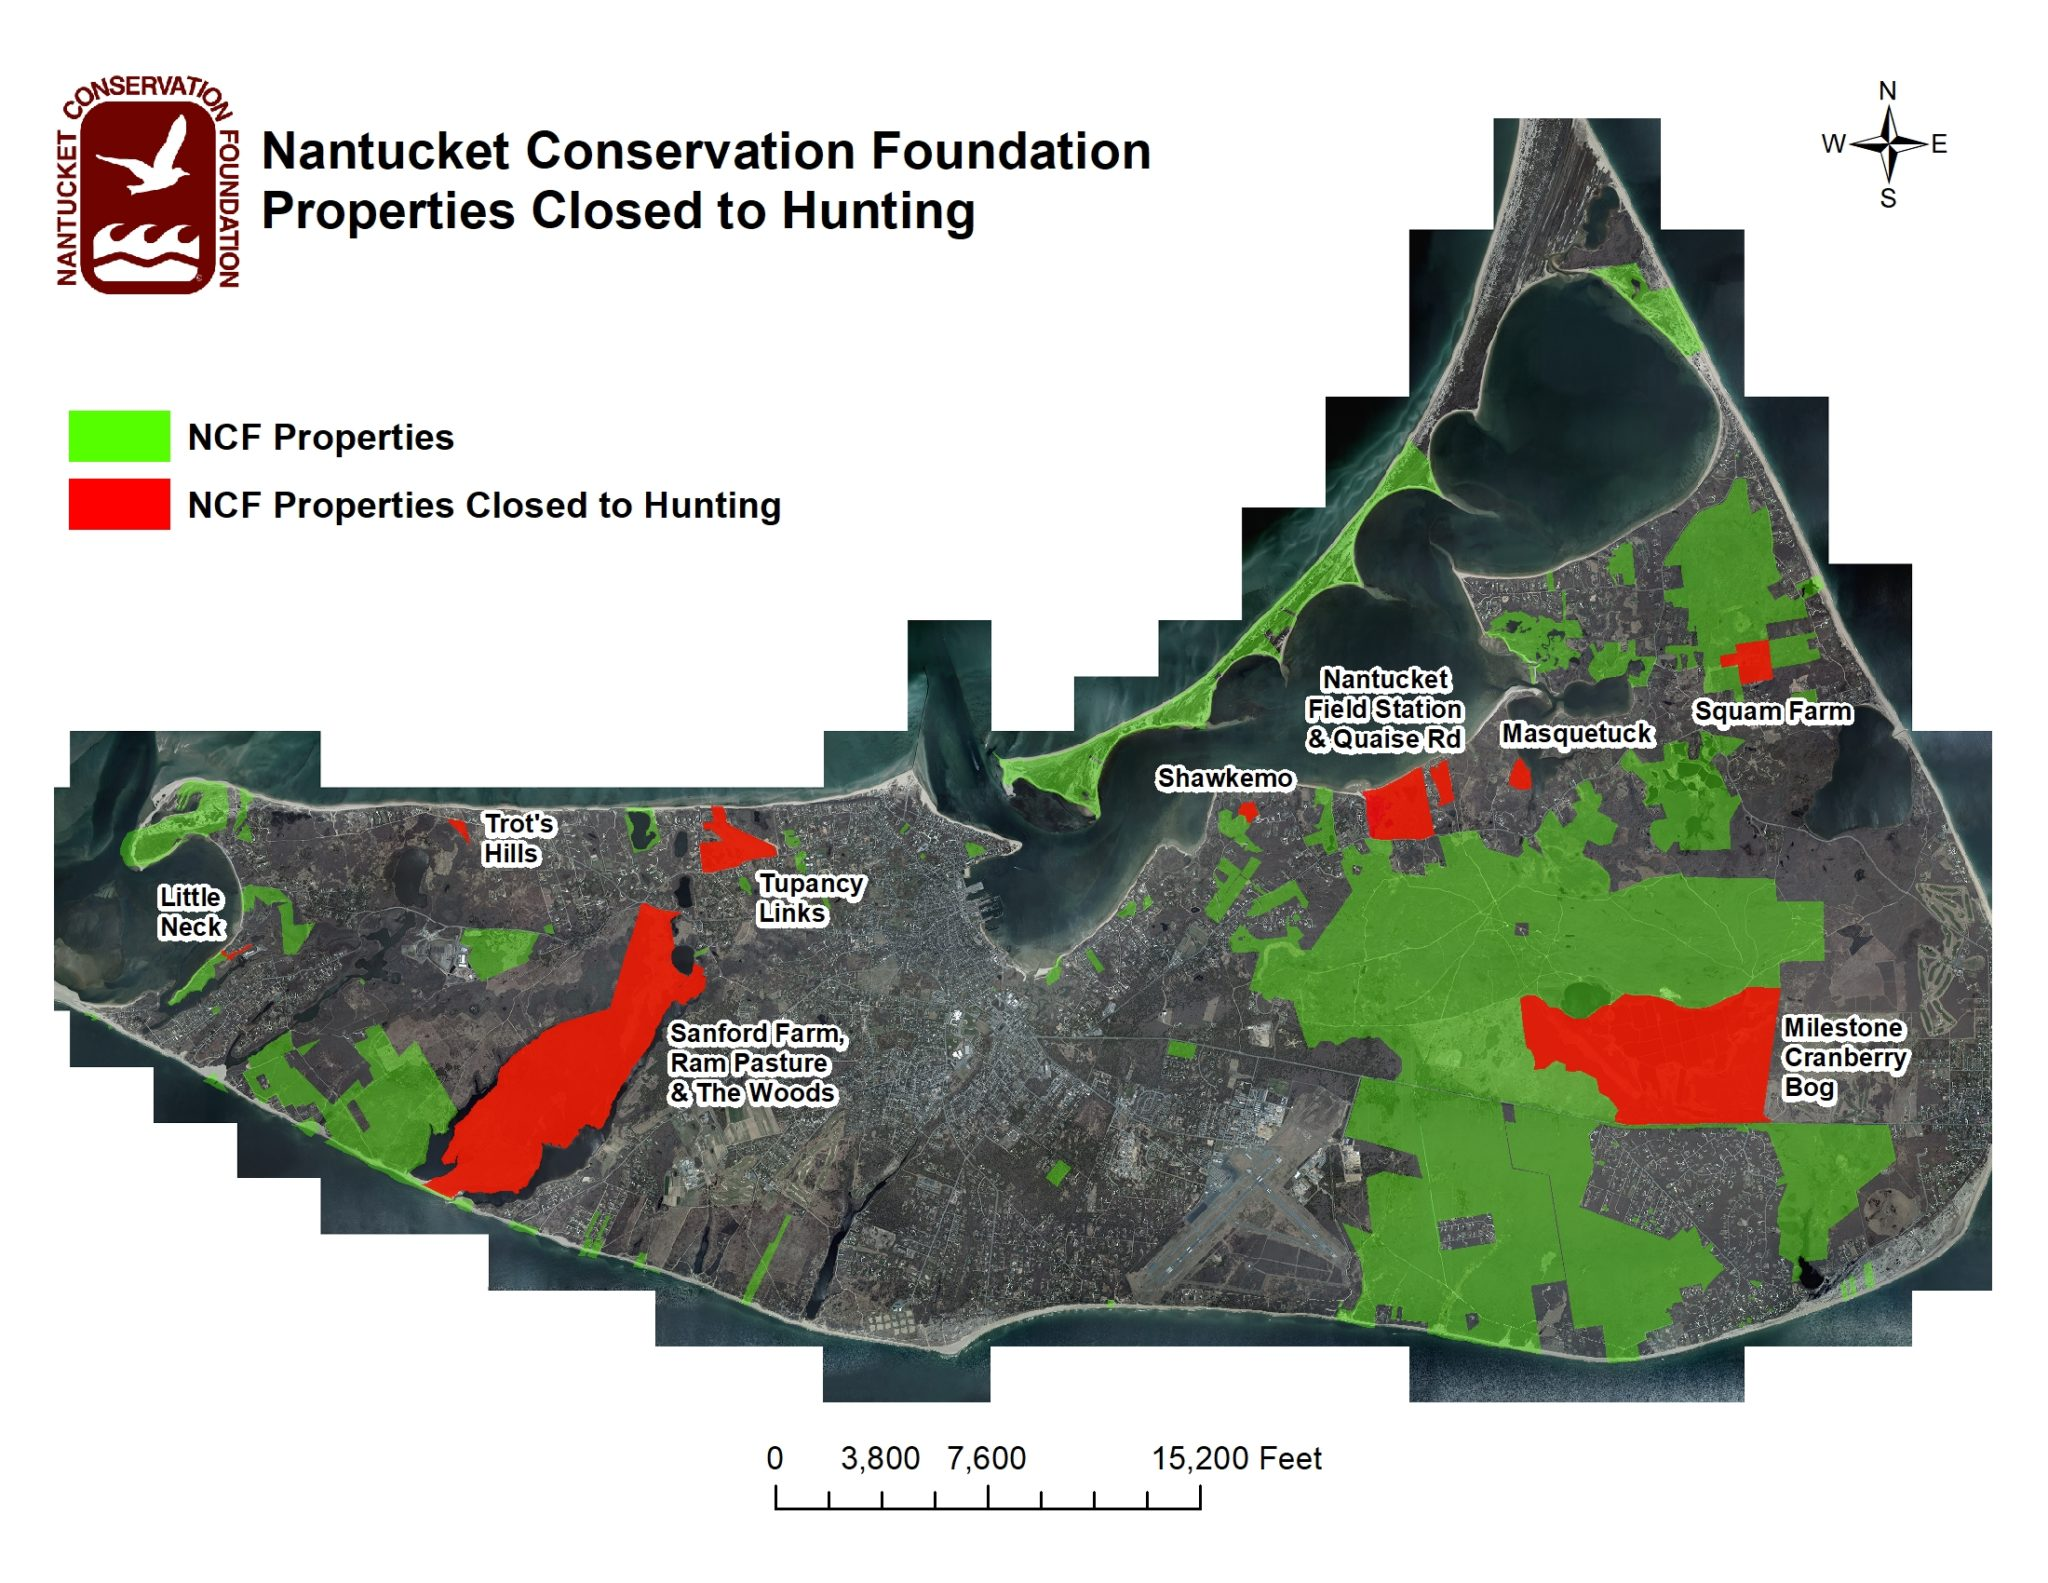 NCF Properties Closed To Hunting